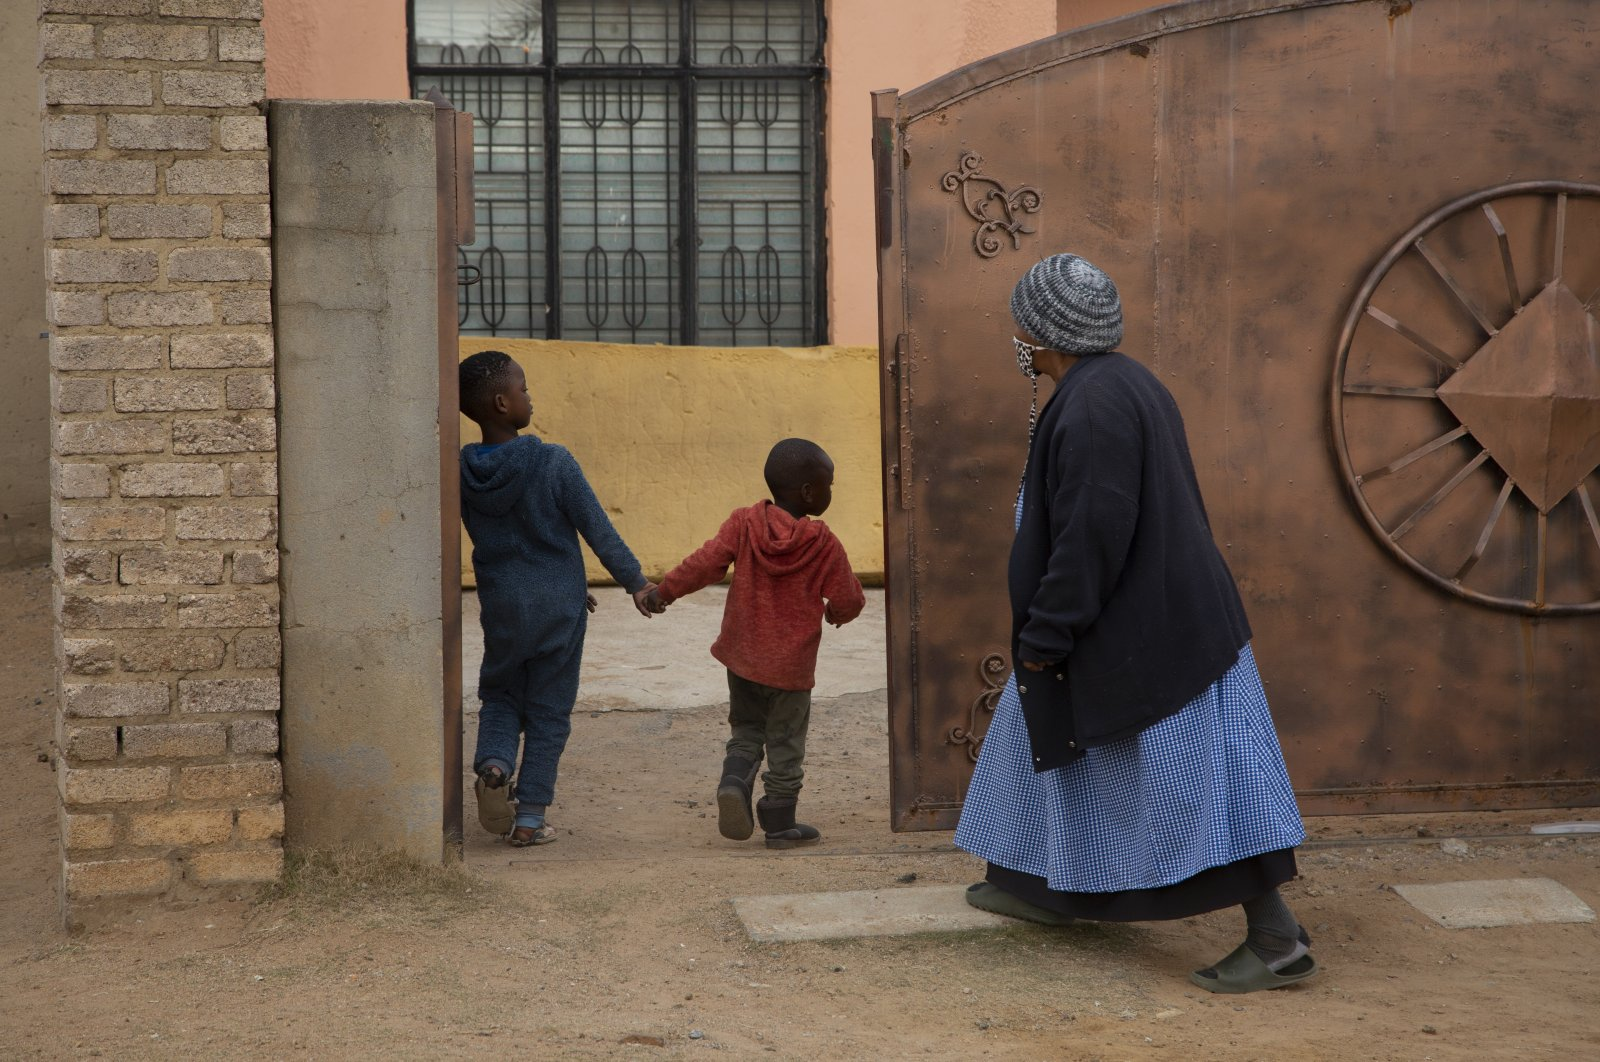 An elderly woman and children enter the property of the home of Gosiame Thamara Sithole in Tembisa, near Johannesburg, South Africa, June 10, 2021. (AP Photo)